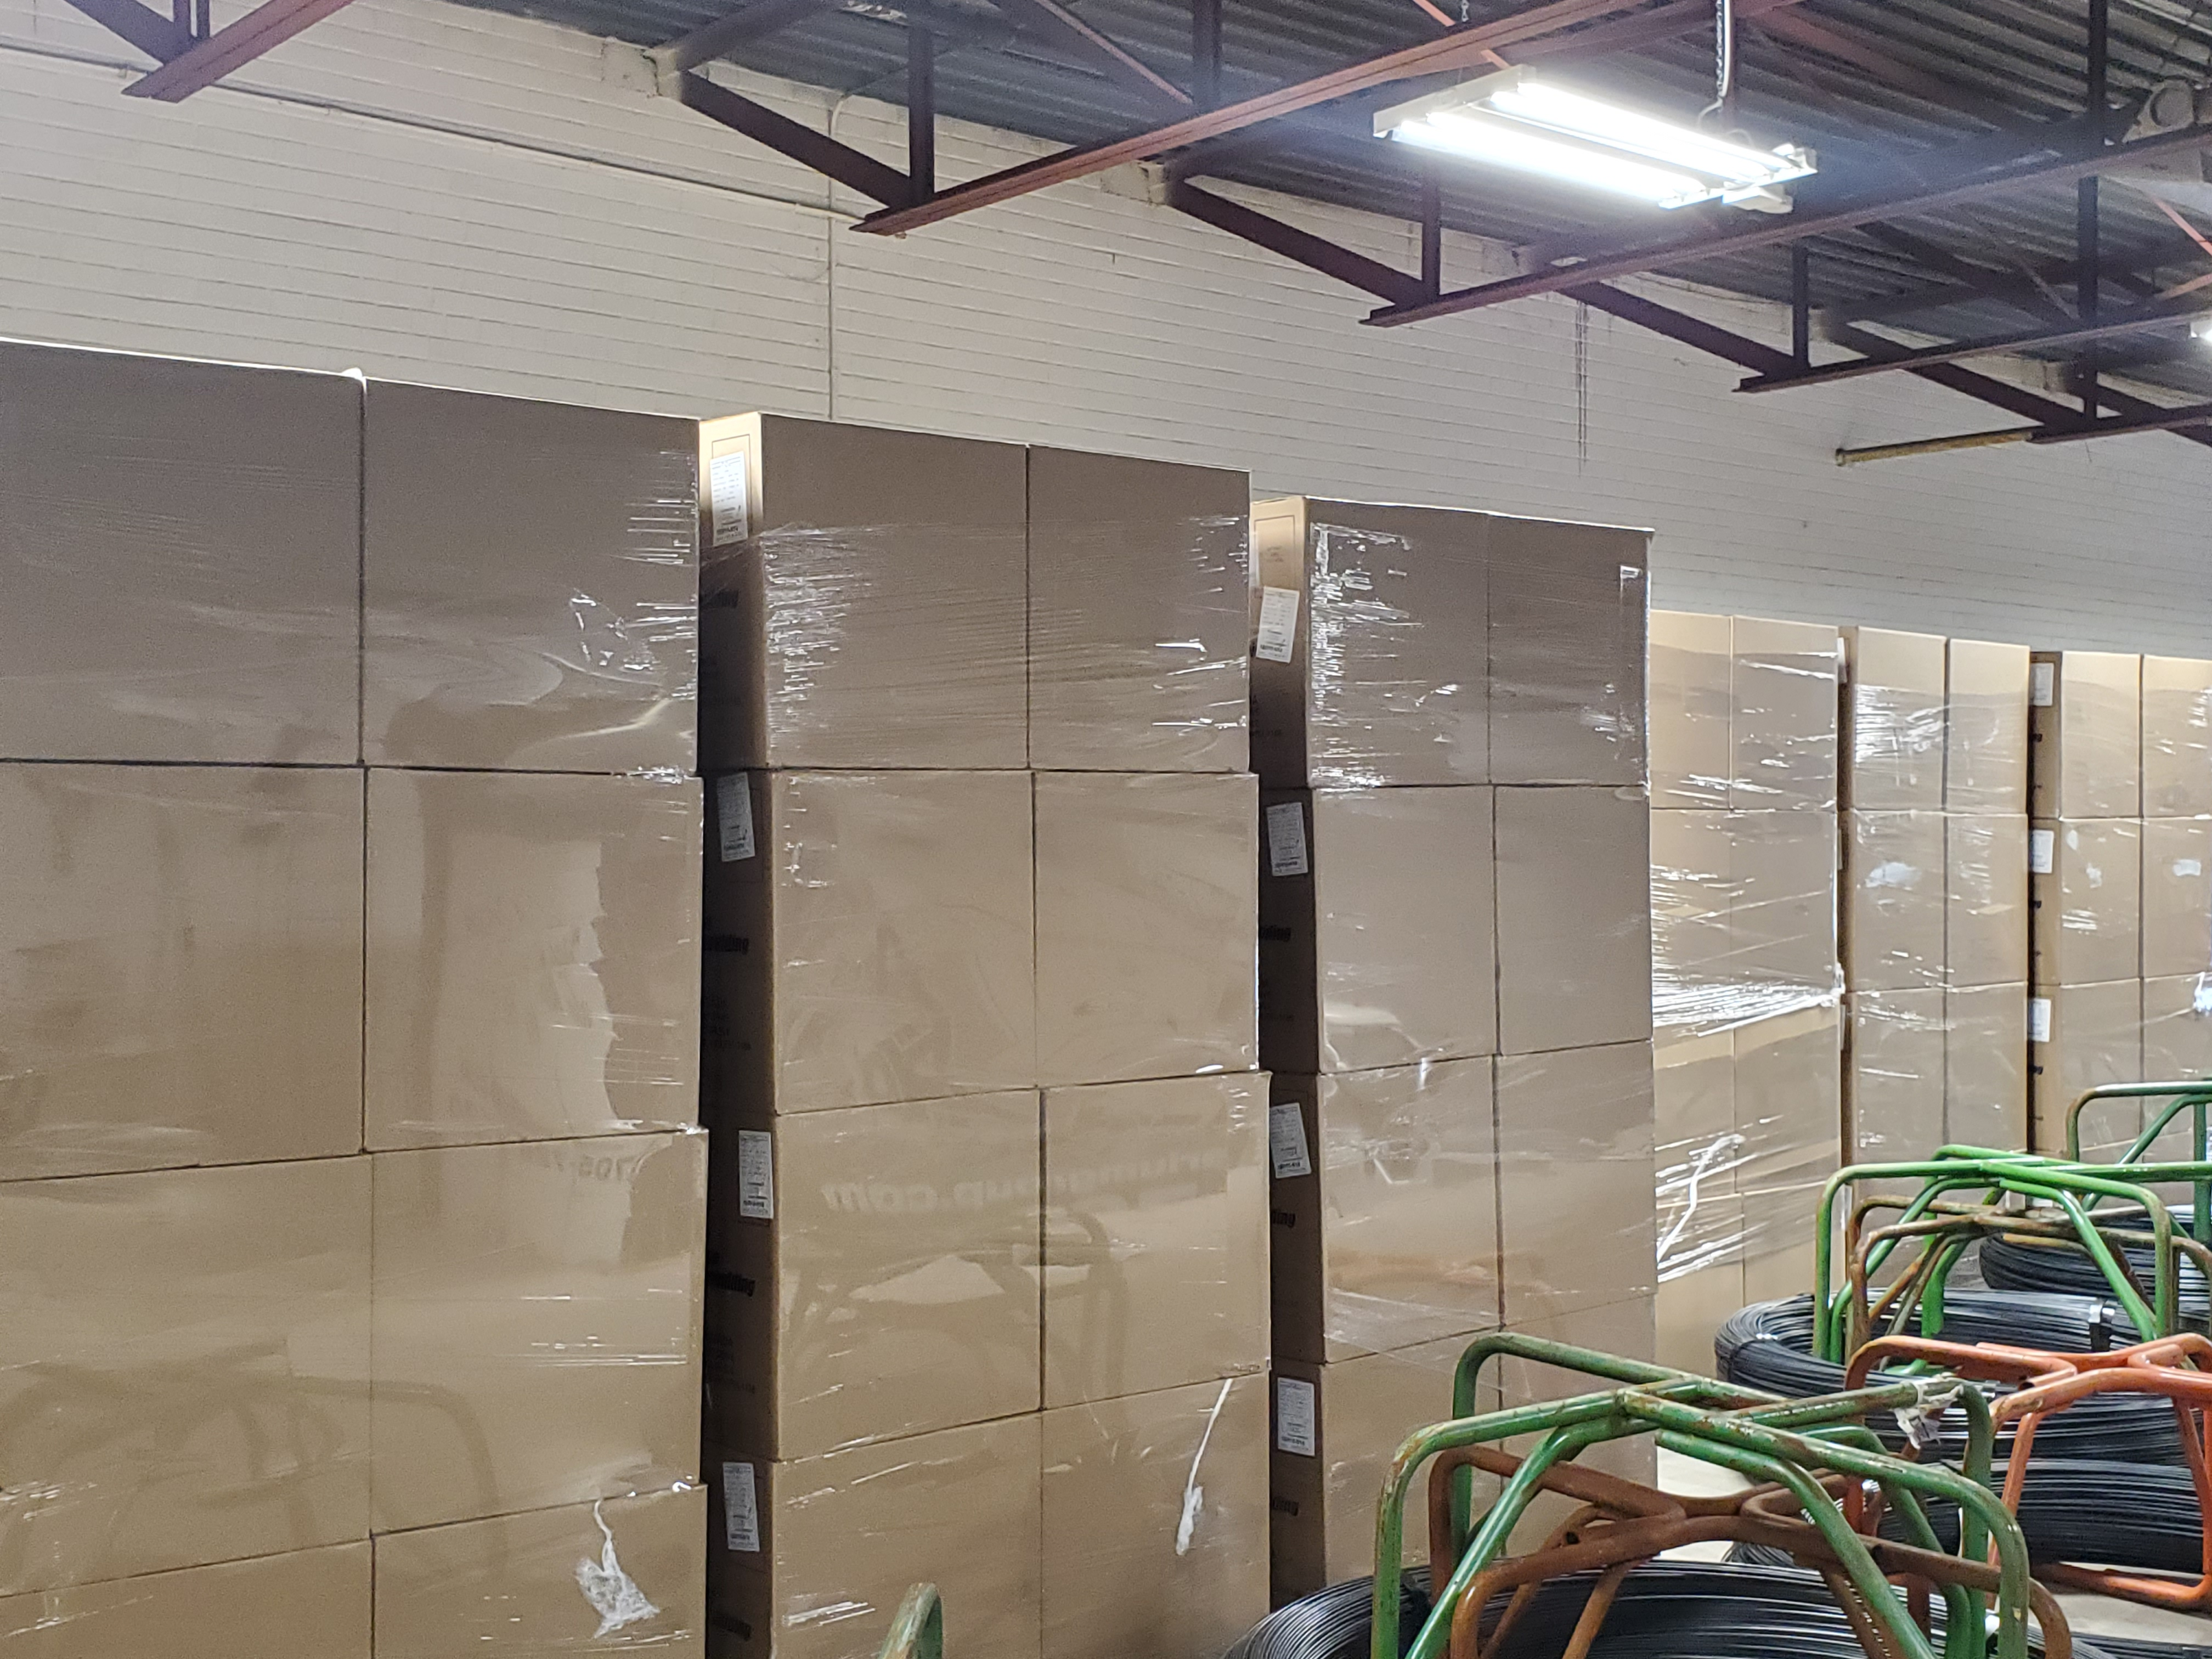 25,000 HDPE Bottles, NATURAL, NEW, 24/410 Neck, 16oz Boston Round **See Auctioneers Note** - Image 3 of 6